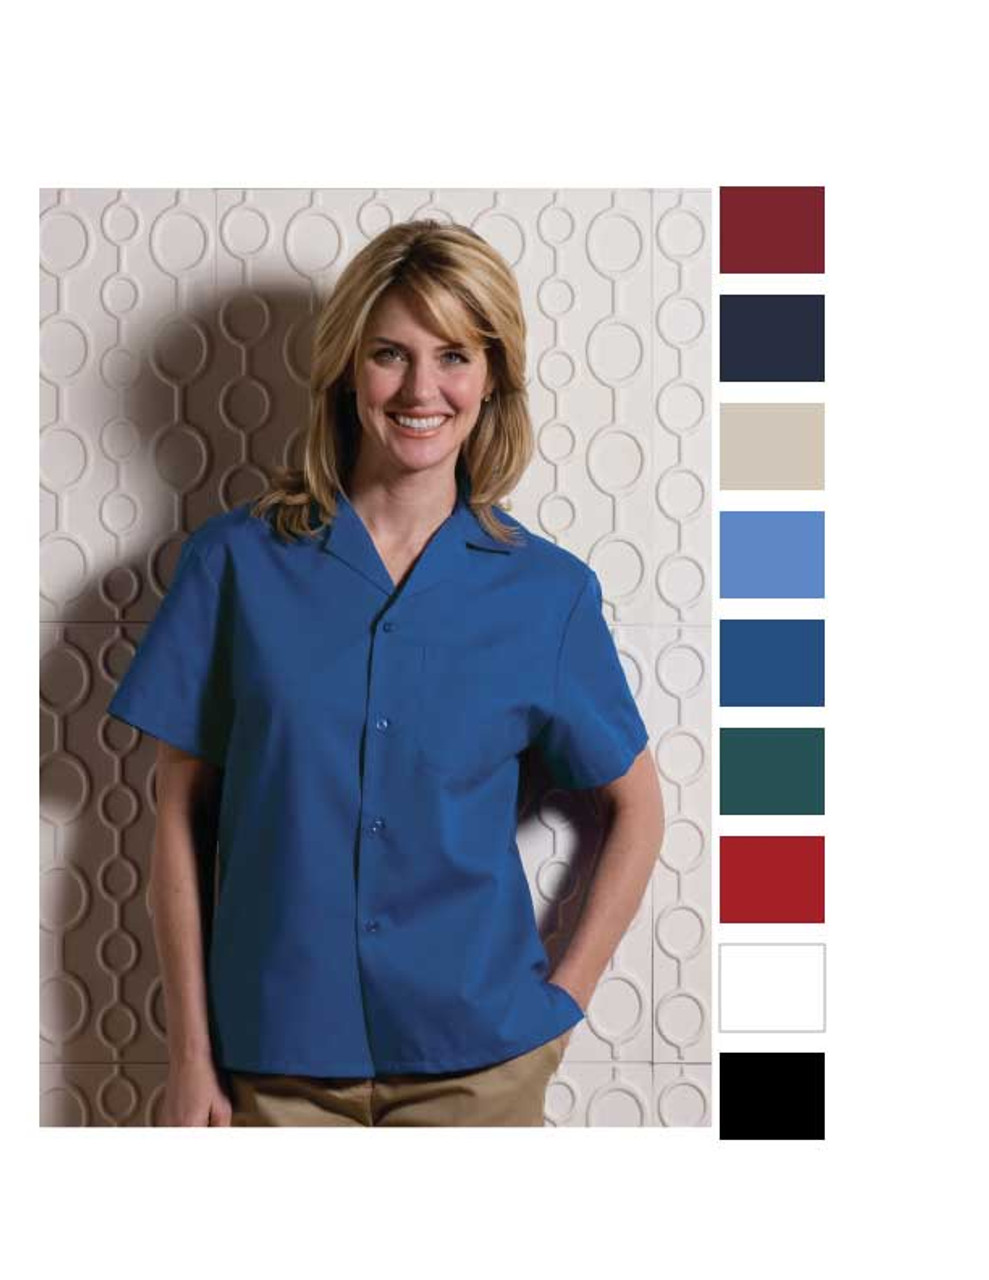 Camp style shirt with easy care guidelines